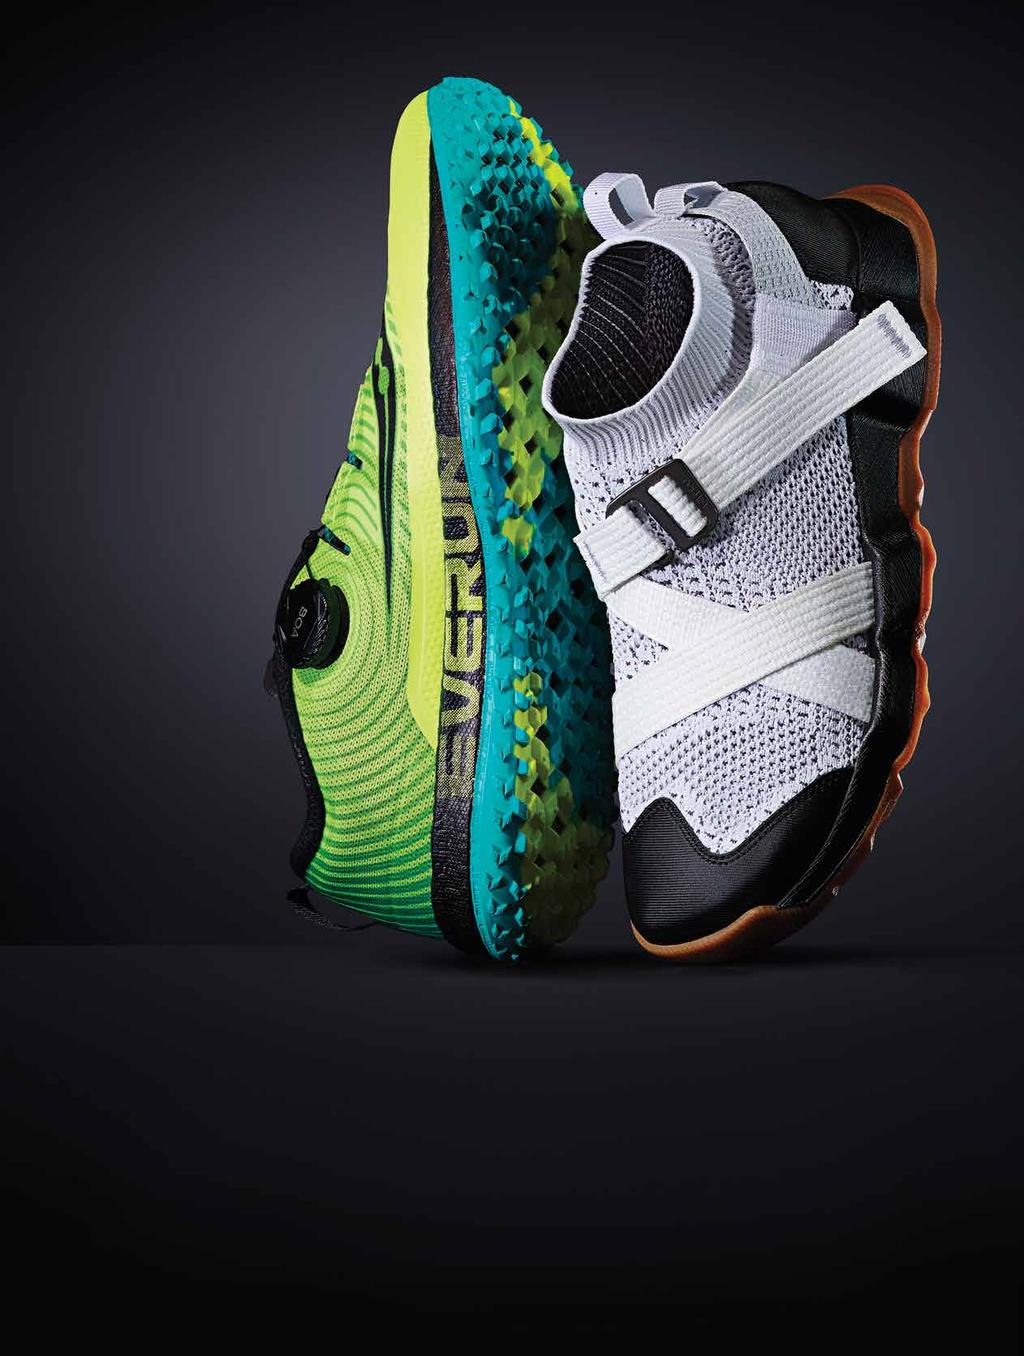 14 JANUARY 2019 CONTENTS 48 TECH TO TREK Technology is at the forefront of fall 19 outdoor shoes.